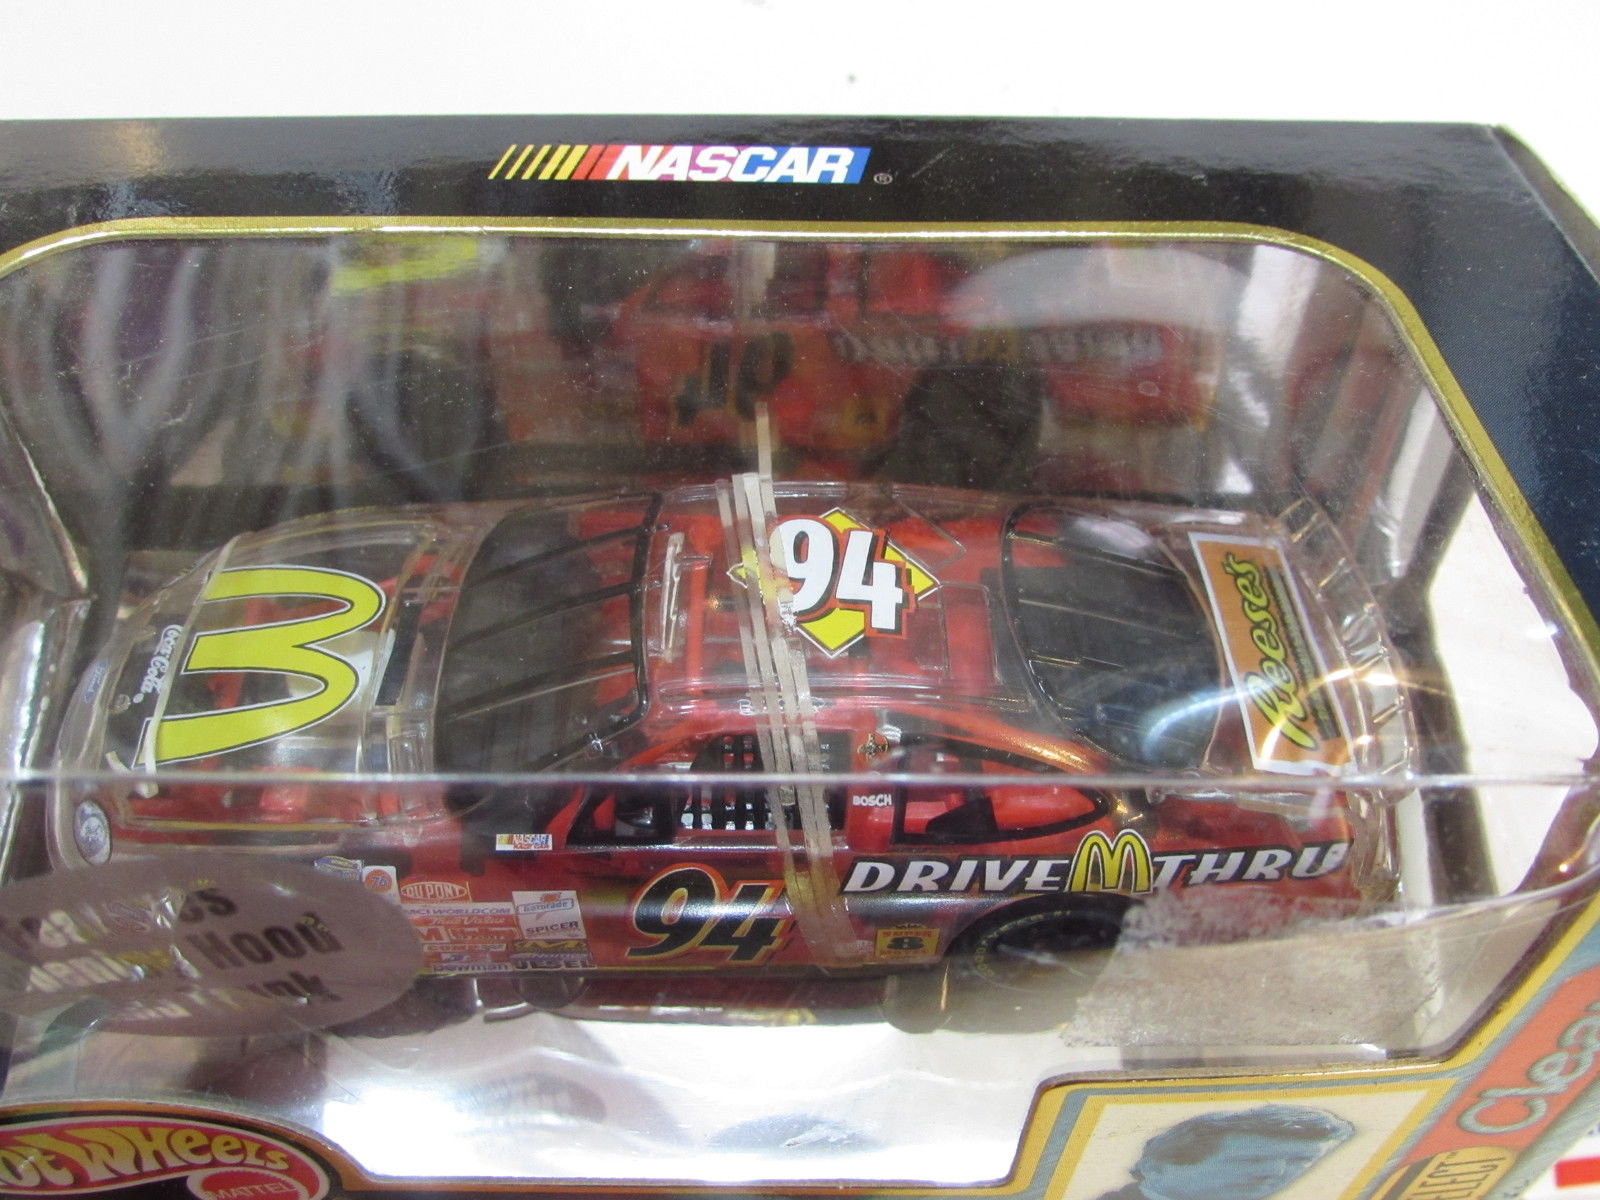 HOT WHEELS NASCAR RACING SELECT CLEAR EDITION - BILL ELLIOT #94 SCALE 1:43